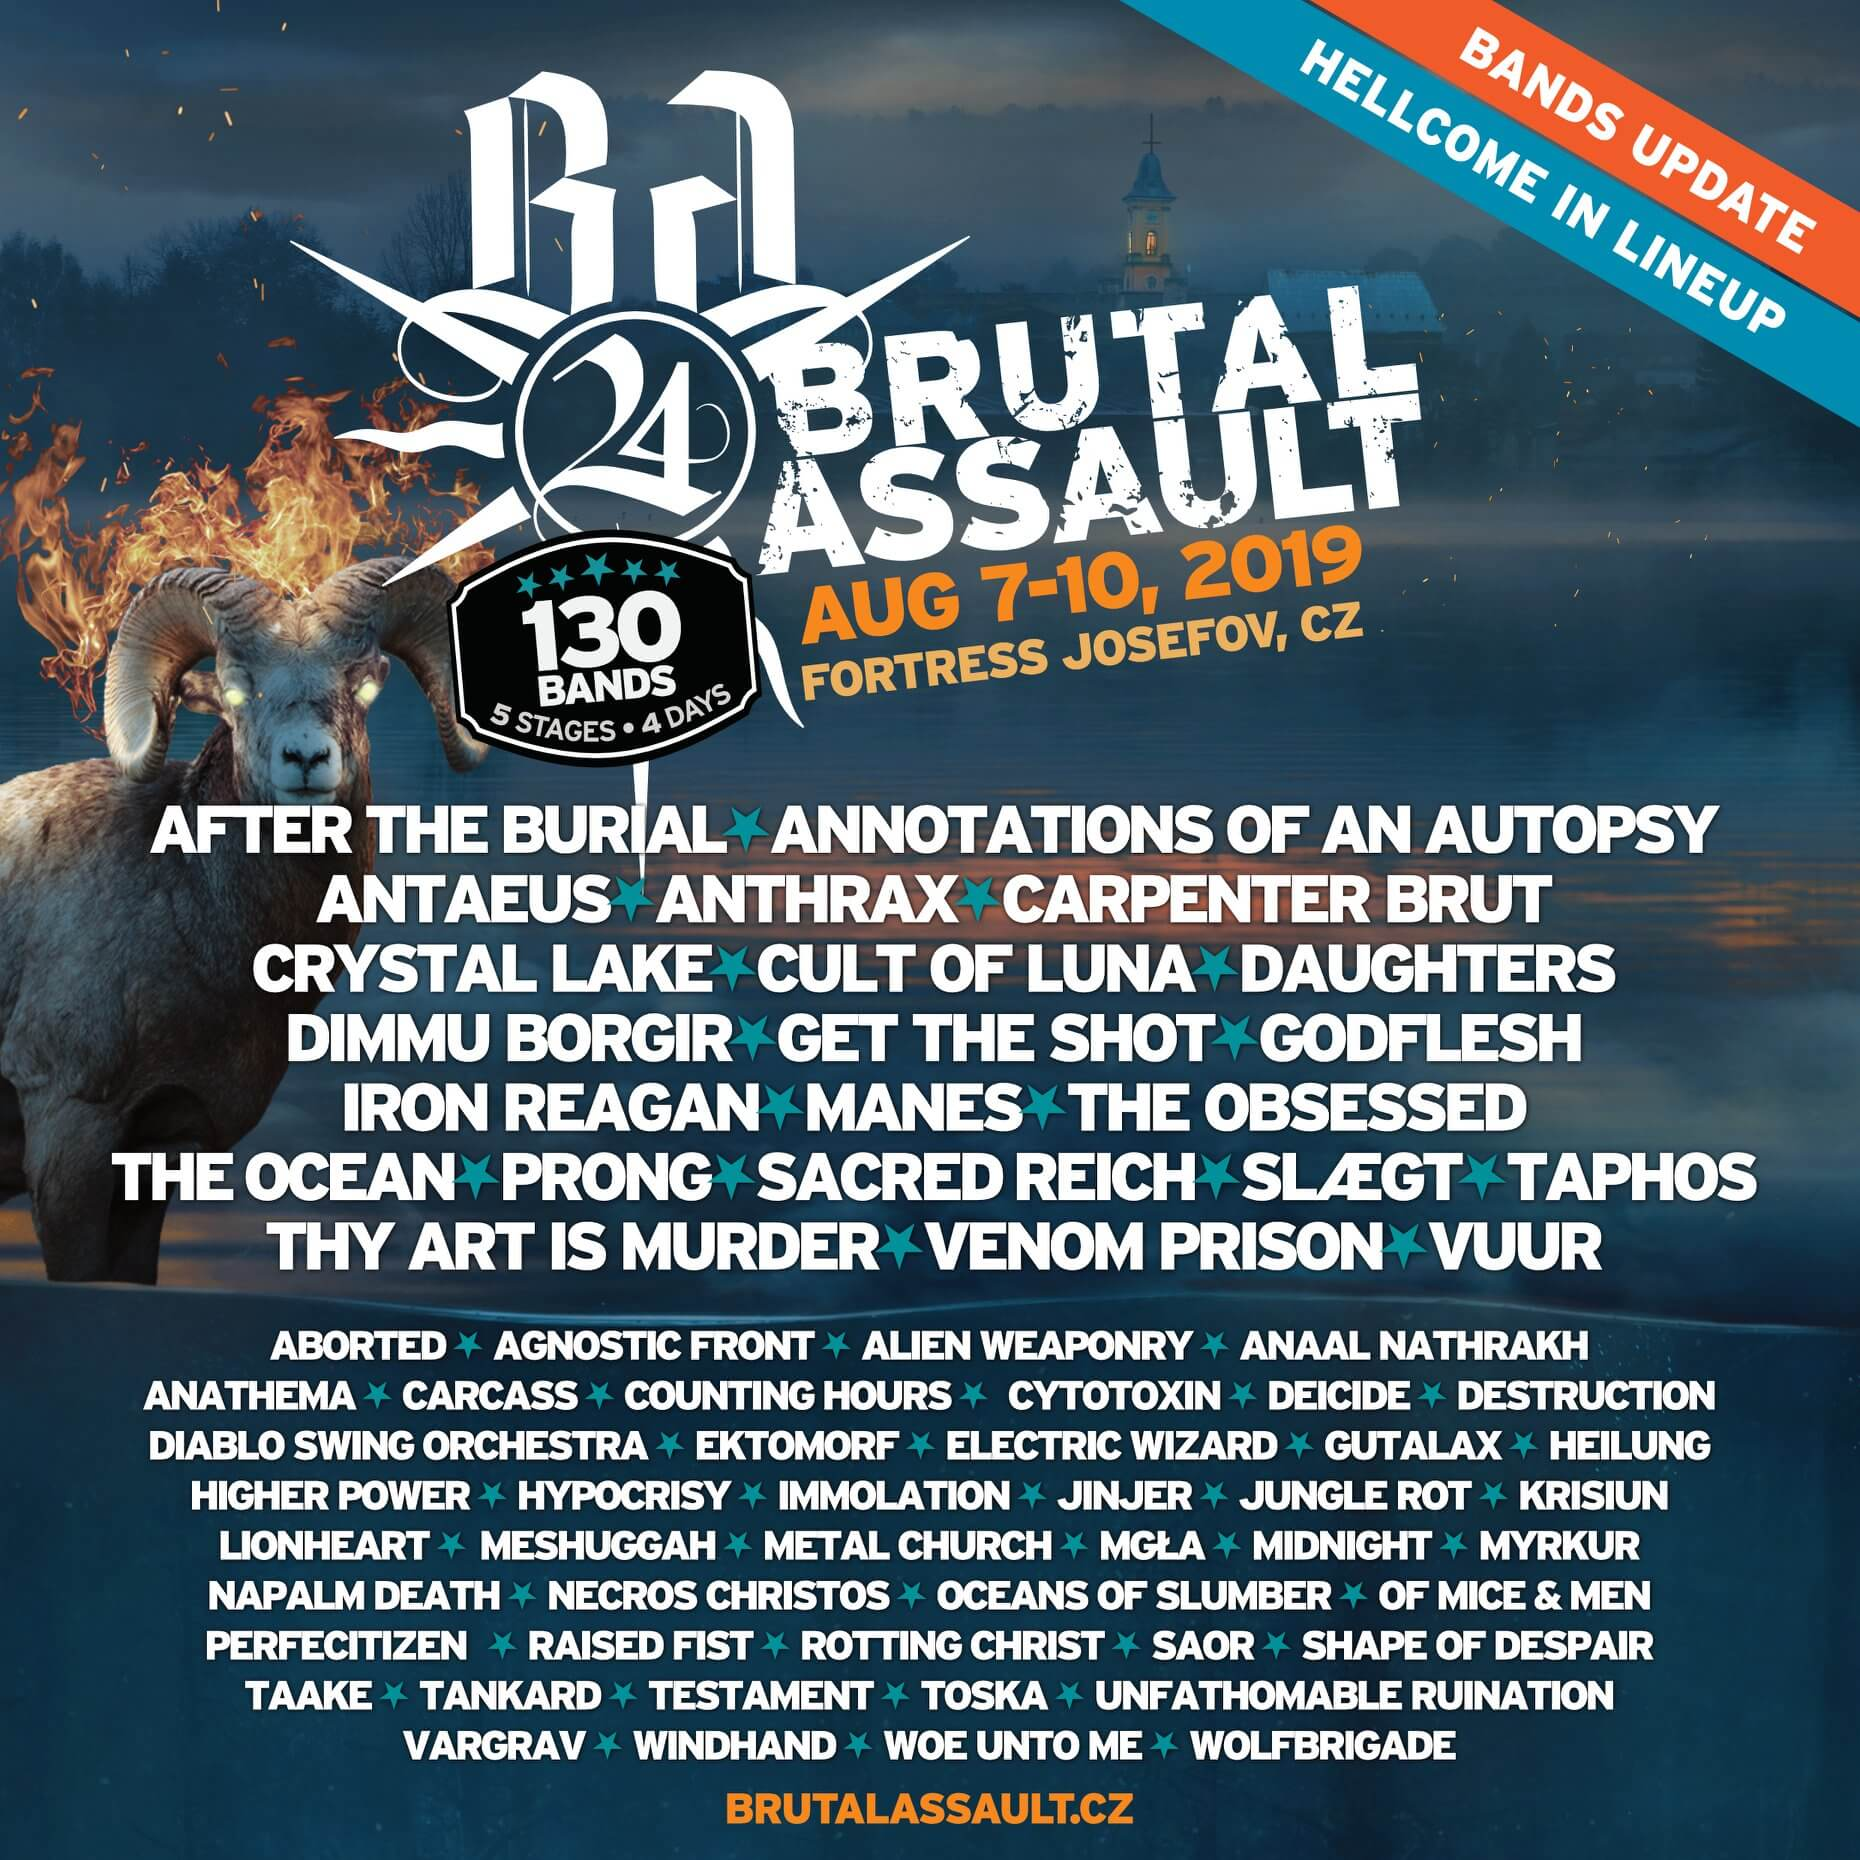 brutal assault - 2019 - upd10dec